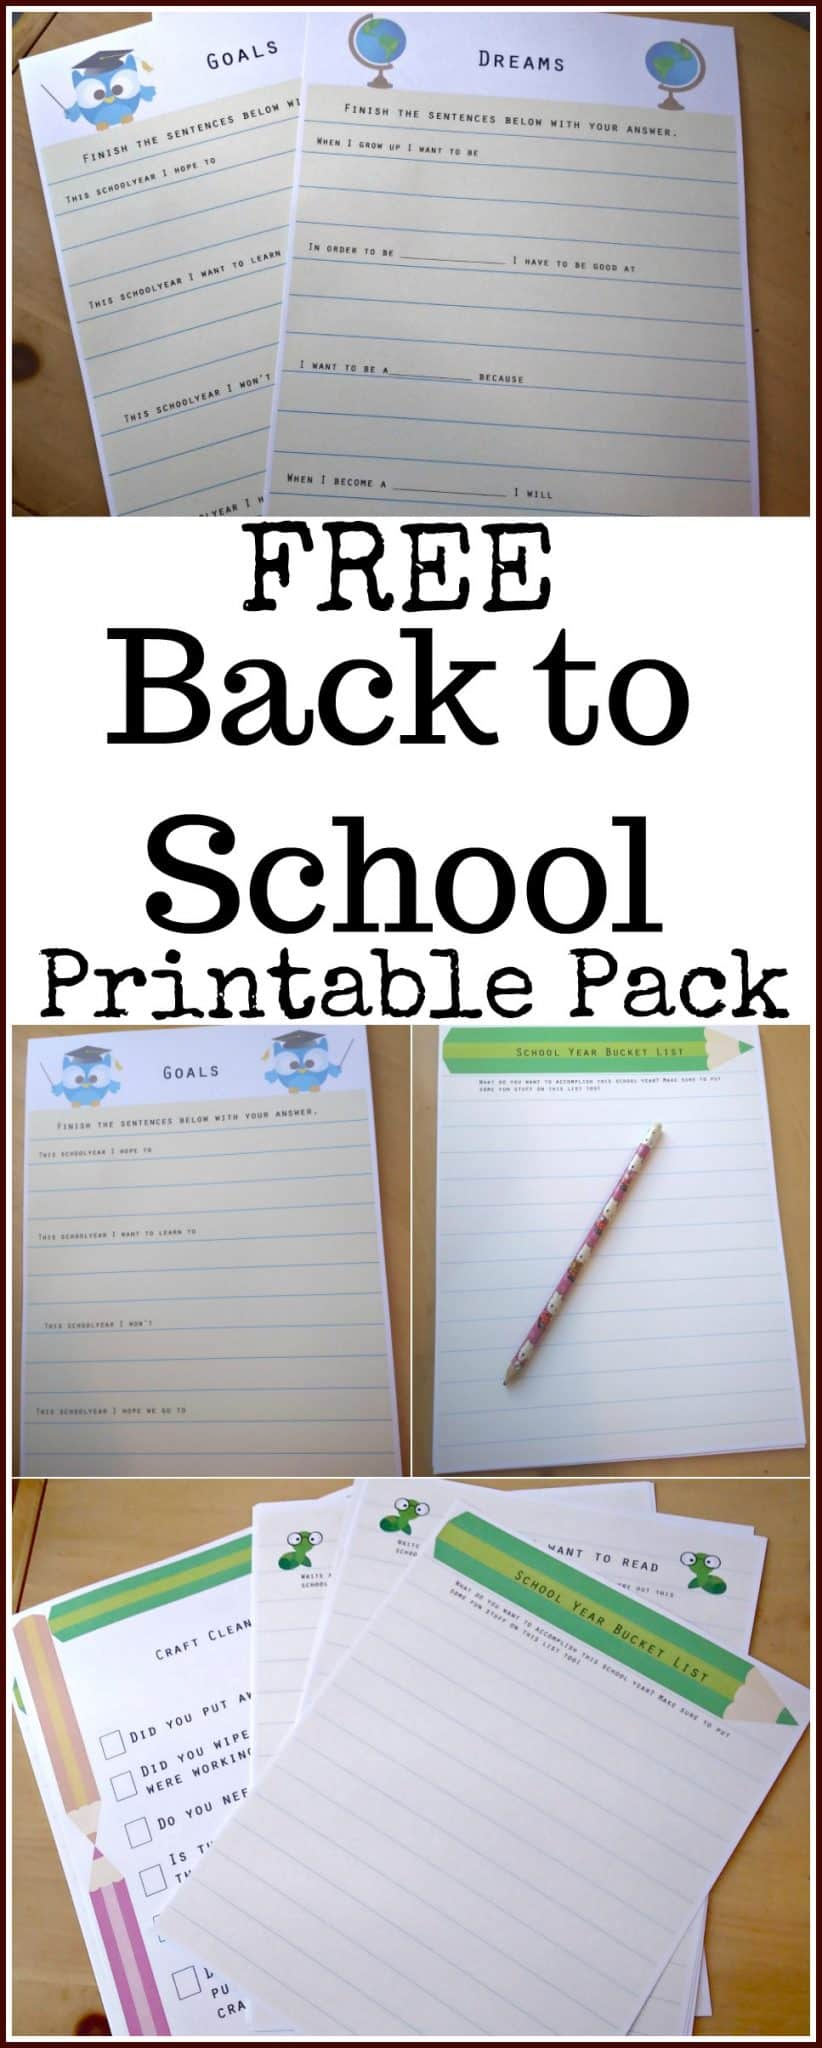 Free Back to School Printable Pack - Great for the classroom or for homeschool families! - #backtoschool #education #freeprintable #edchat #printable